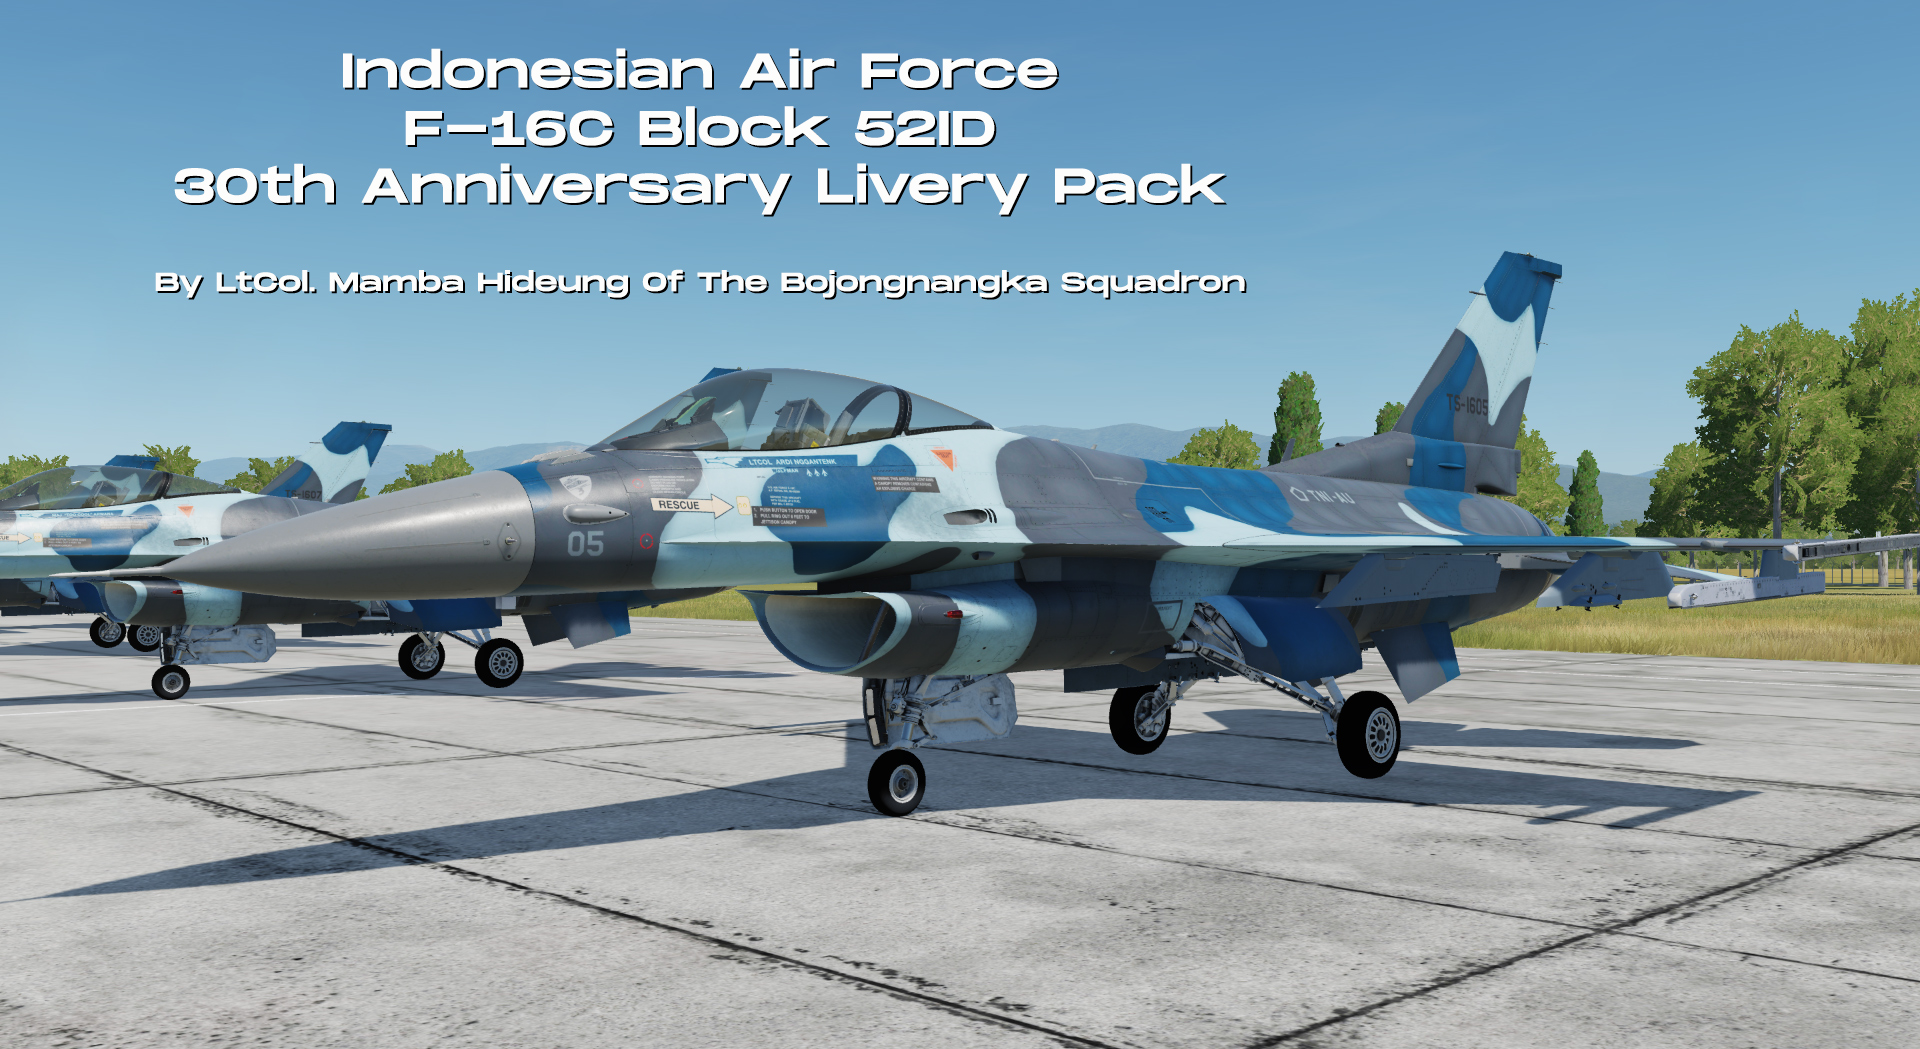 Indonesian Air Force - F-16 Fighting Falcon 30th Anniversary.